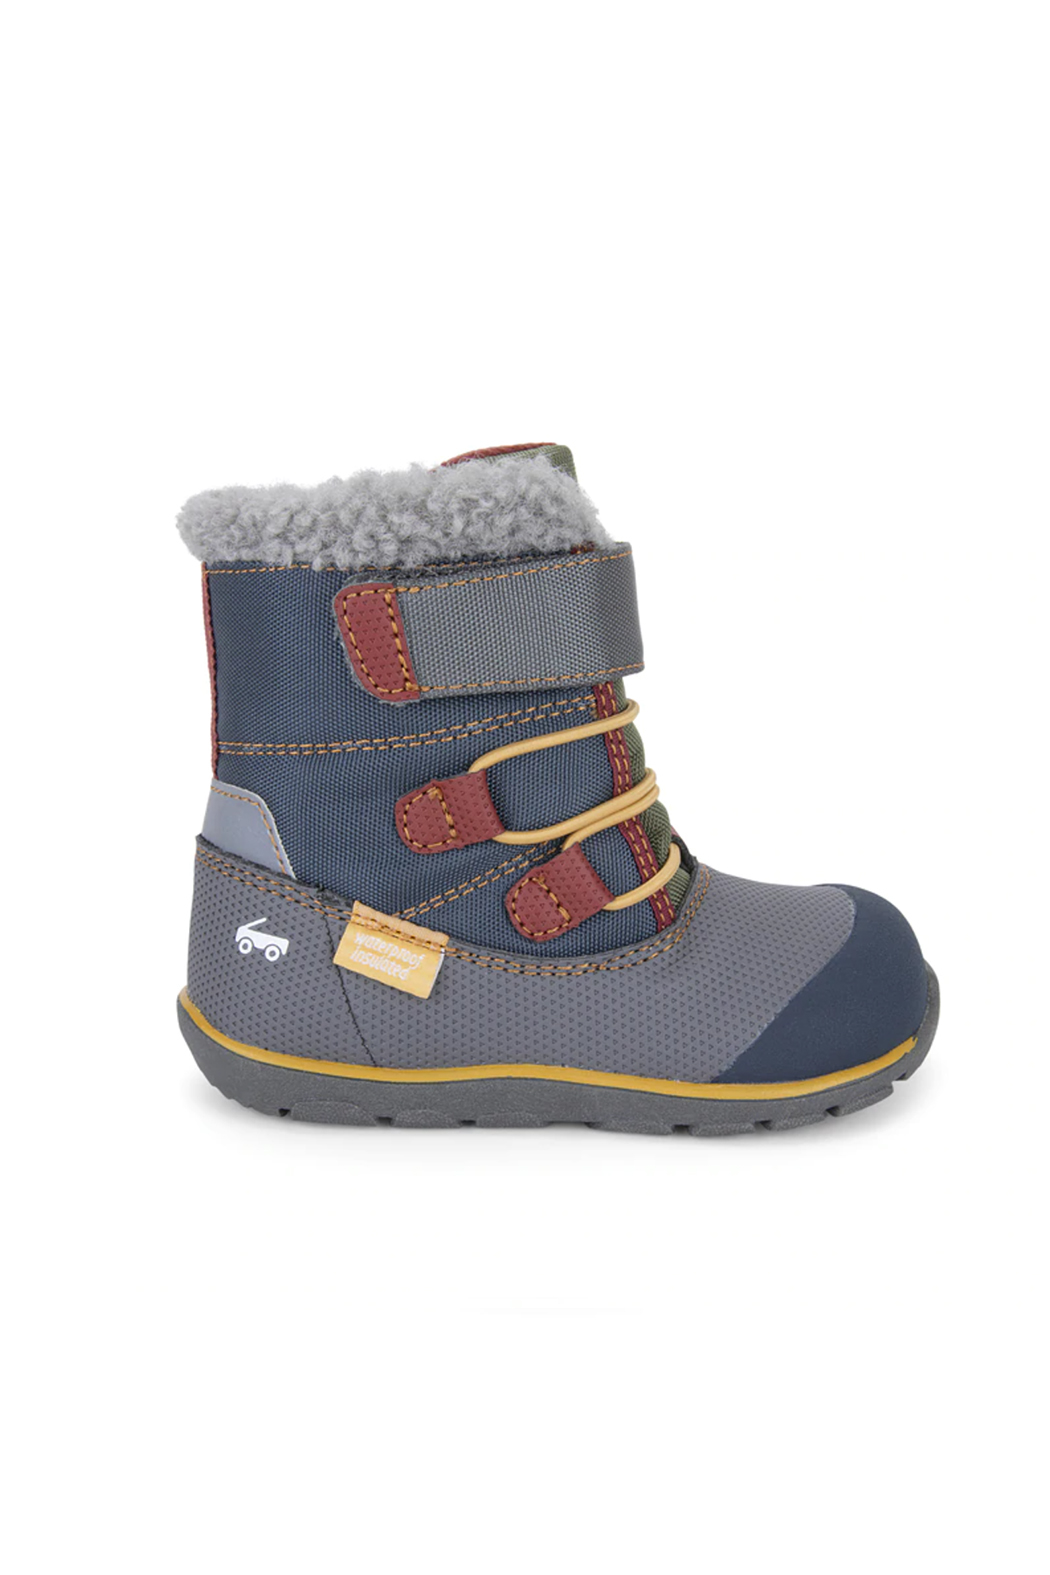 See Kai Run Gilman Waterproof Insulated Boots - Gray/Blue - Front Cropped Image